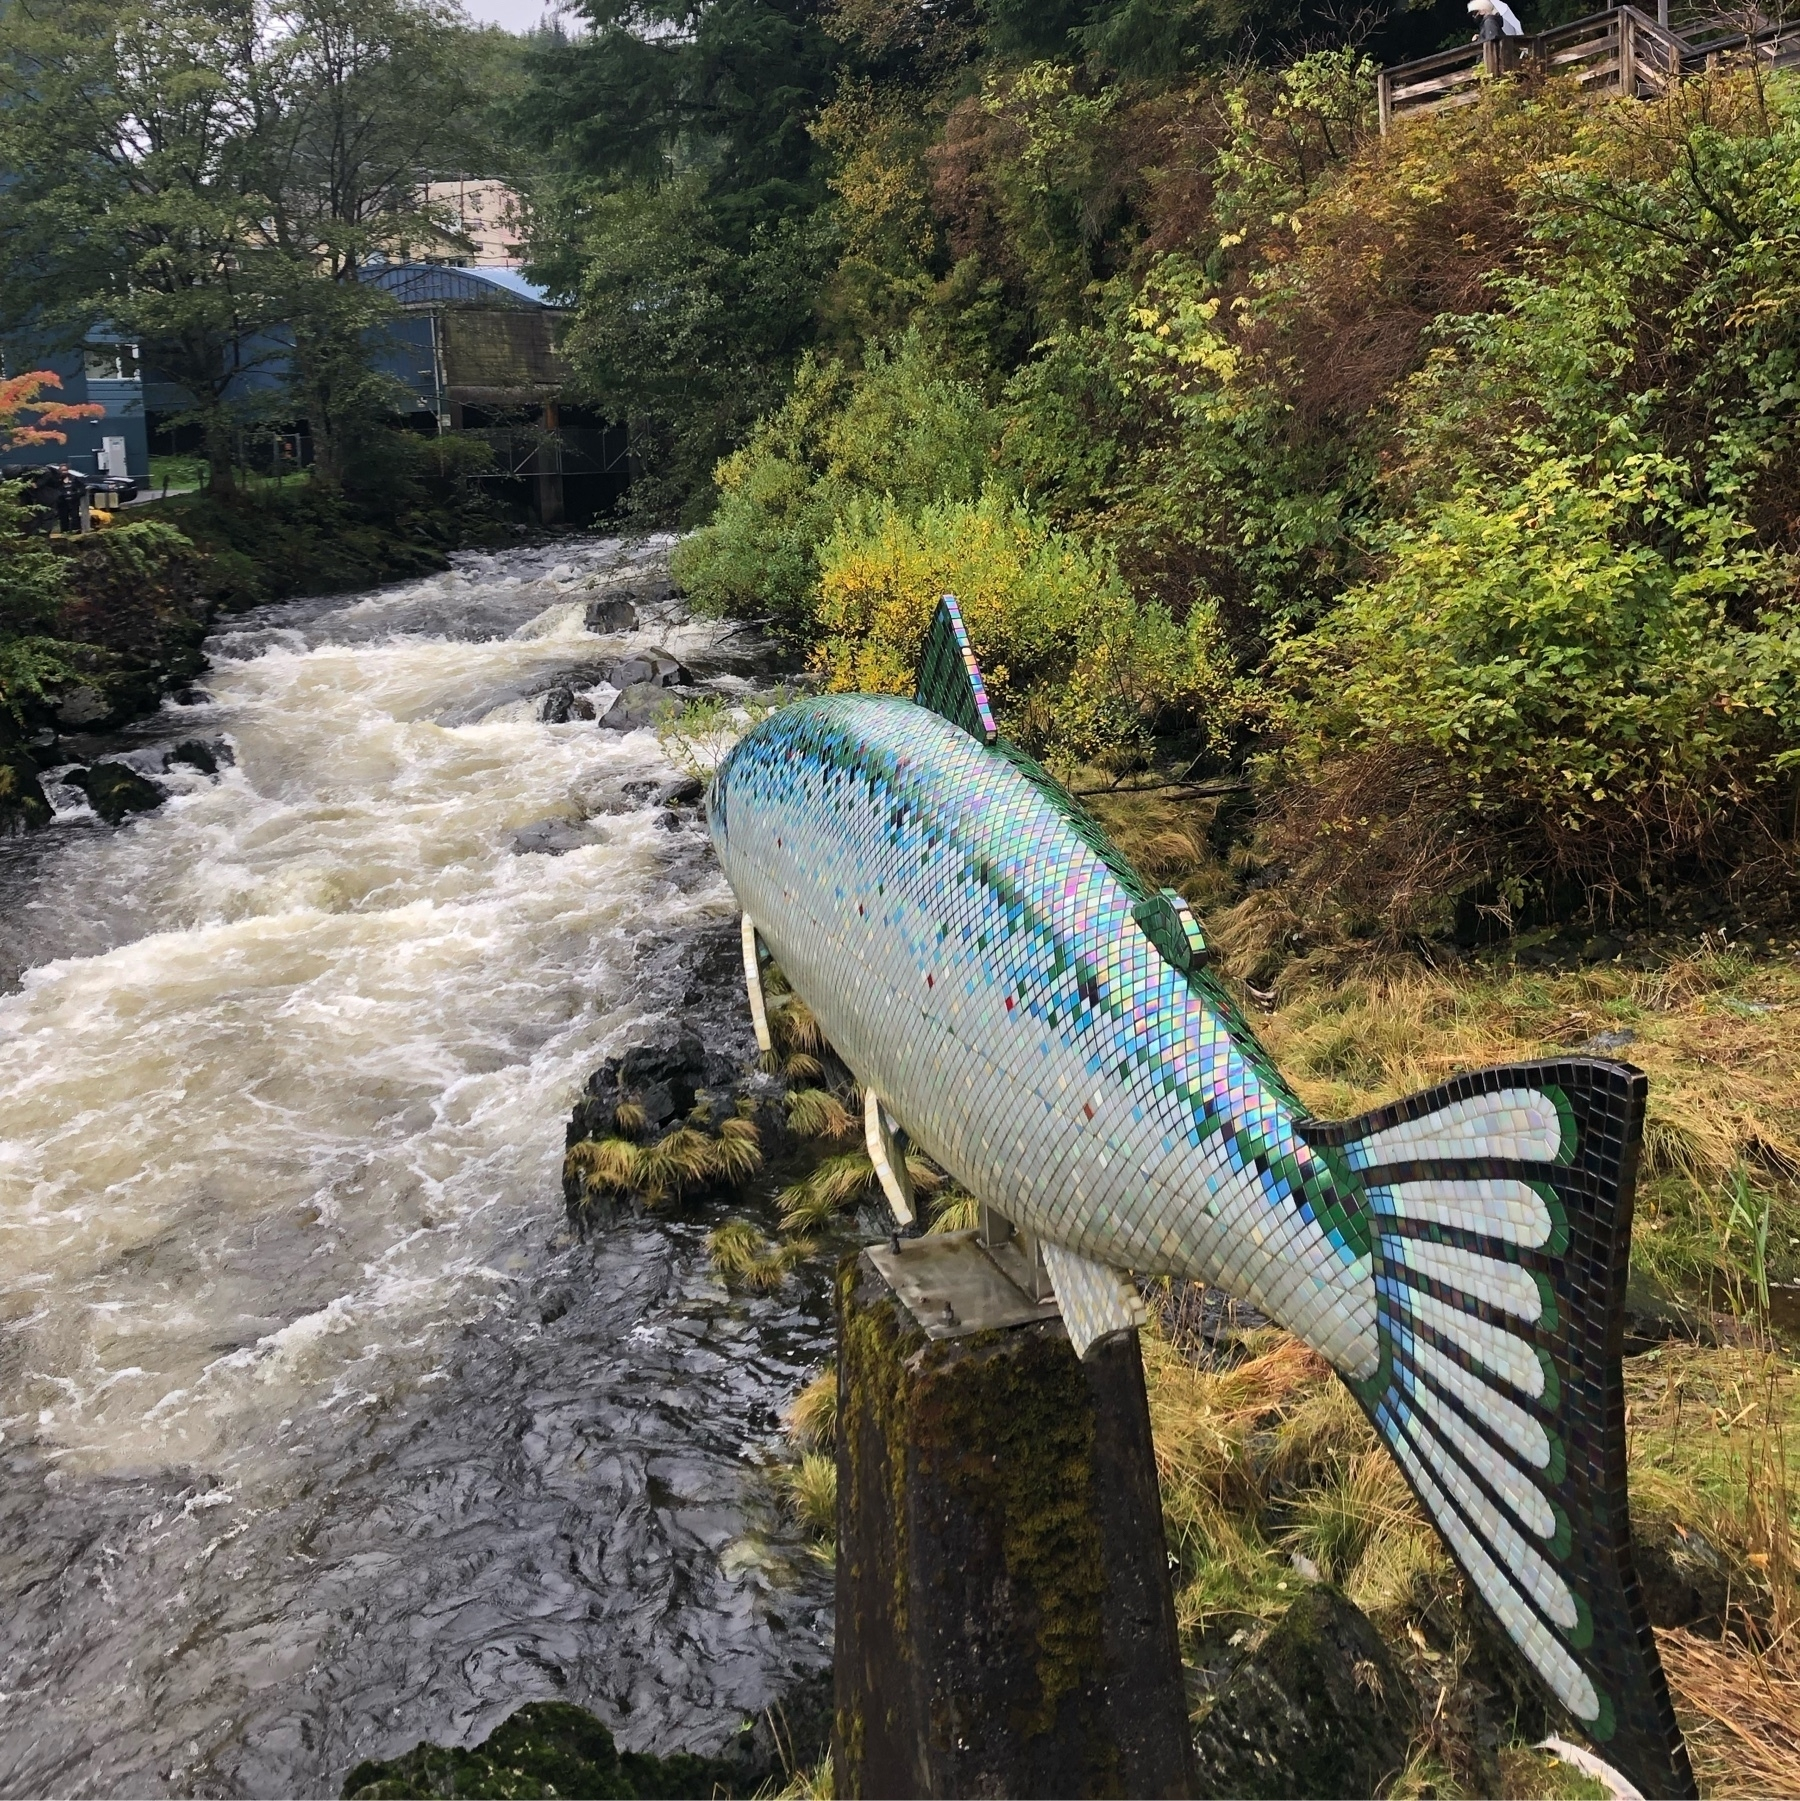 A large salmon made of wood and covered in tiny tiles in a realistic color, it points towards the raging river, an art installation in Ketchikan Alaska